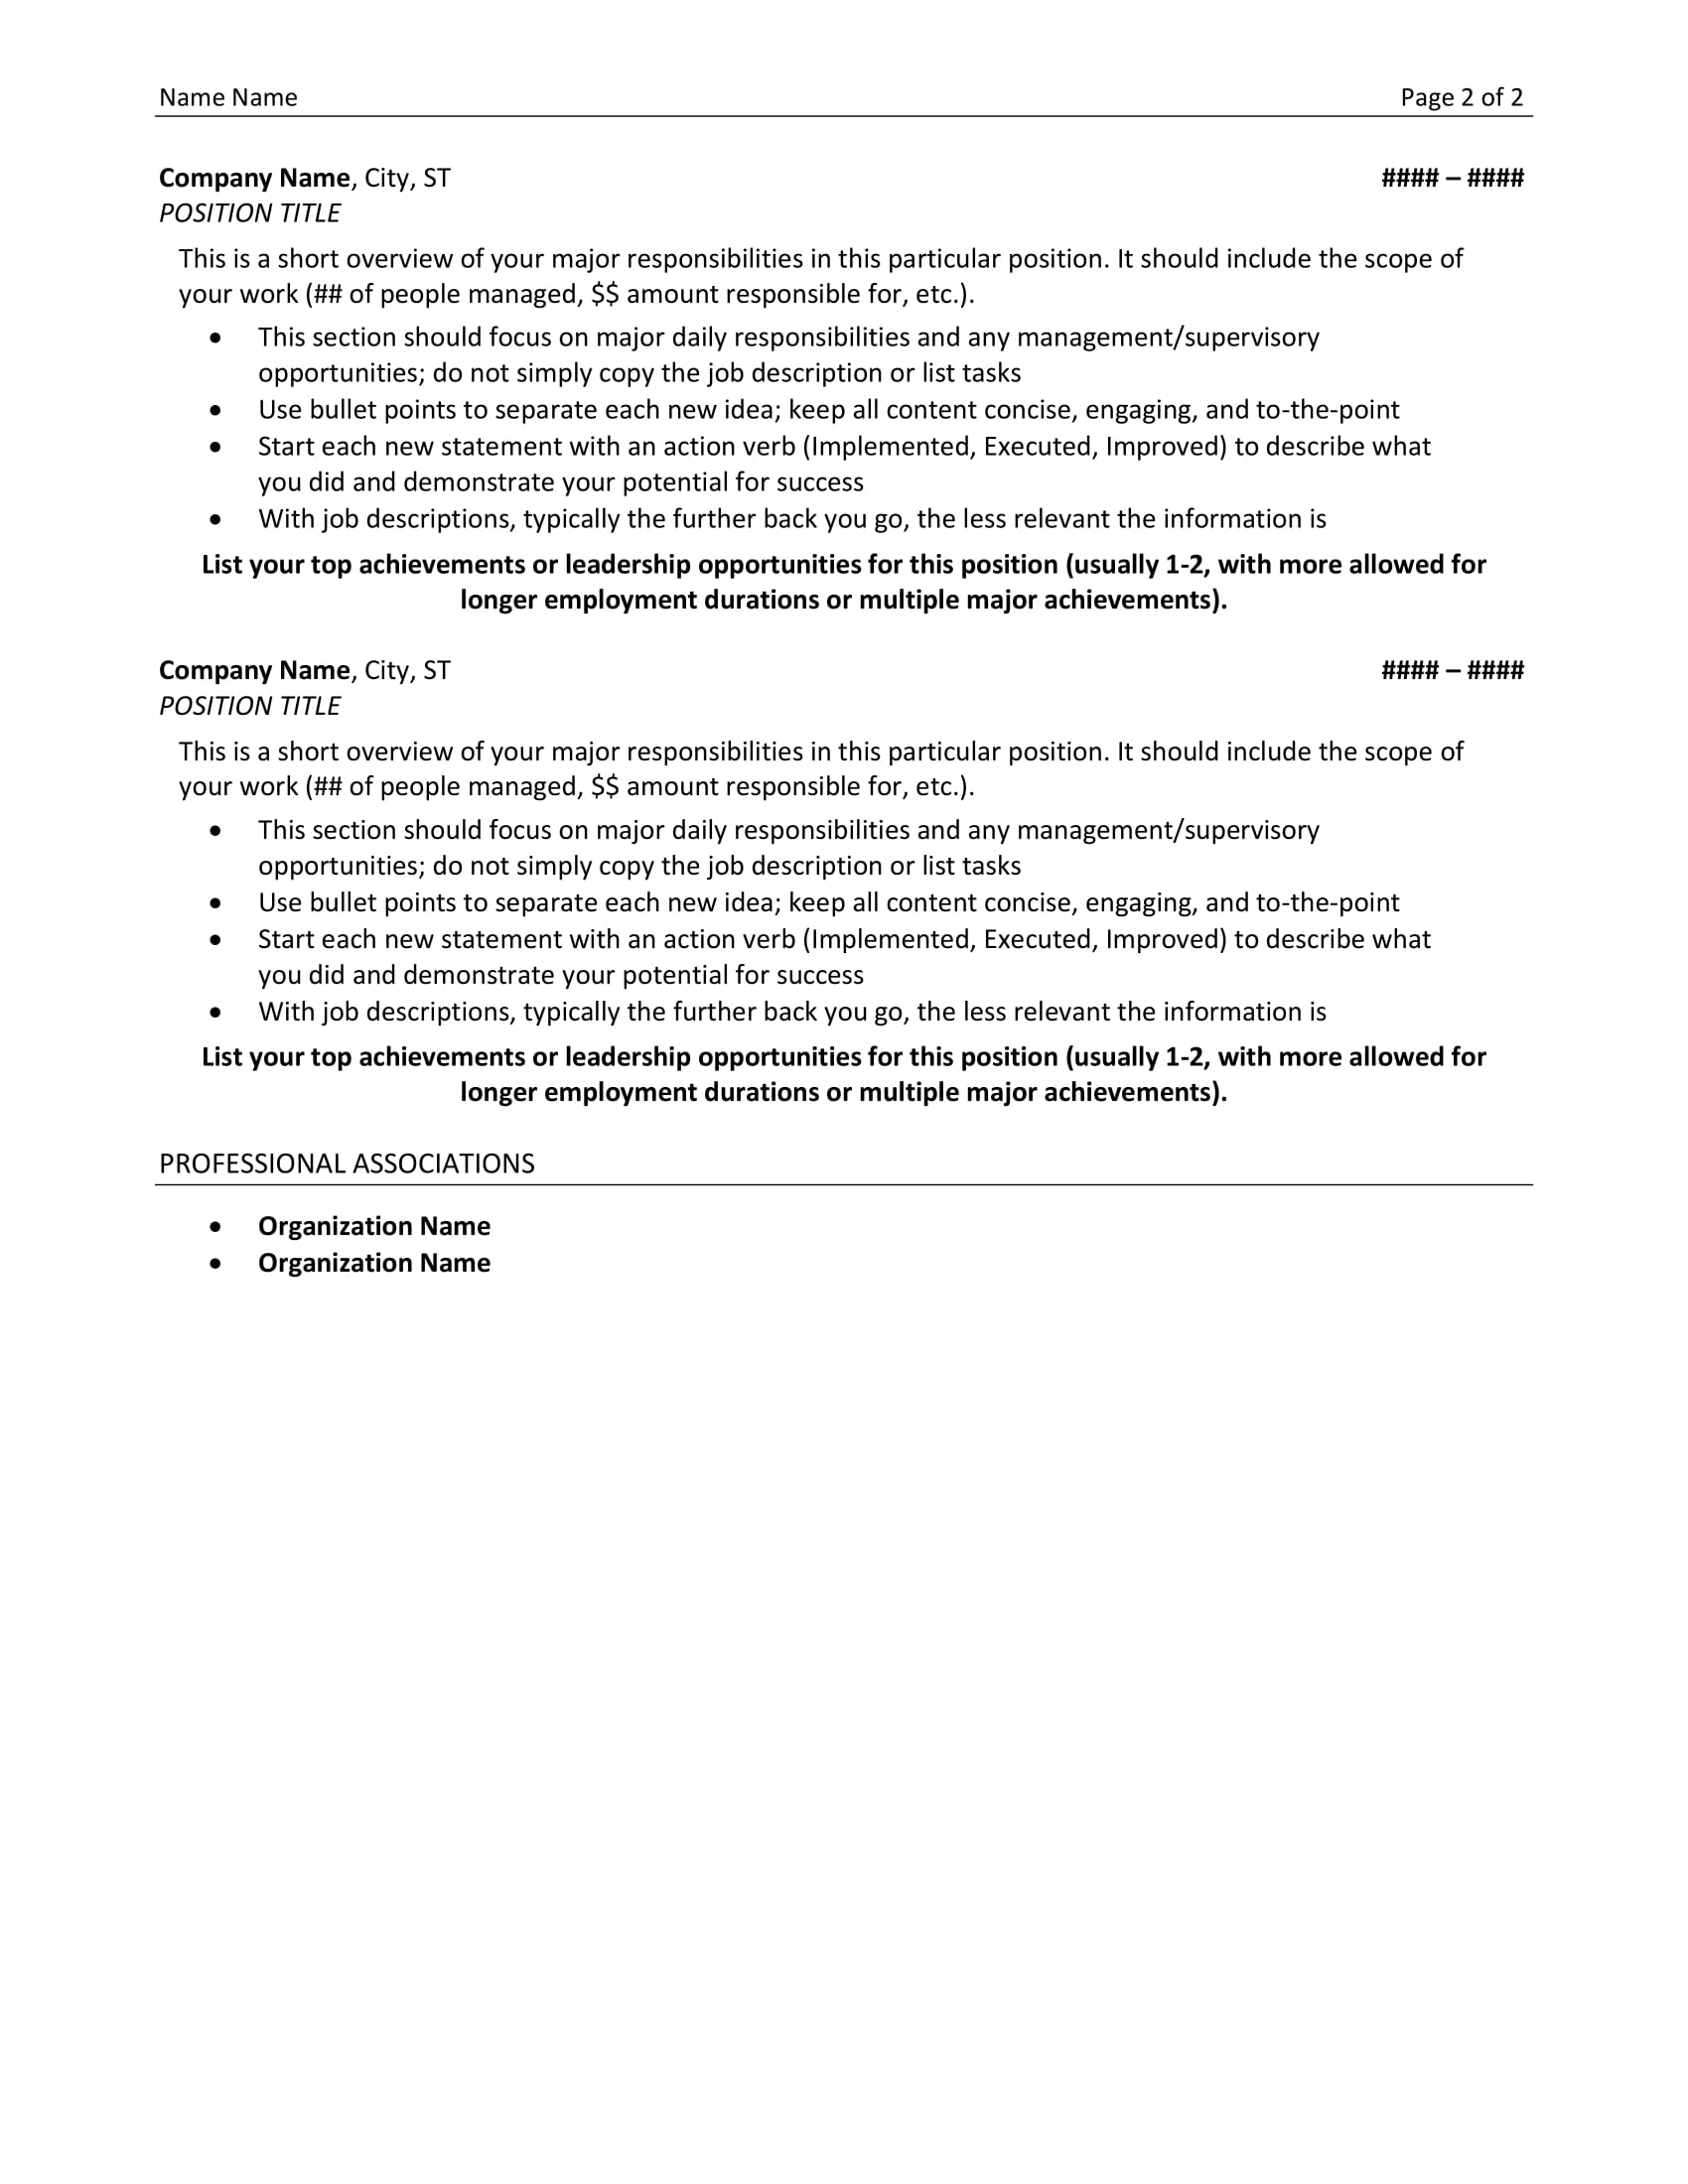 Example Professional Resume Resume Example Resume Sample All Level Resumes Resume Template